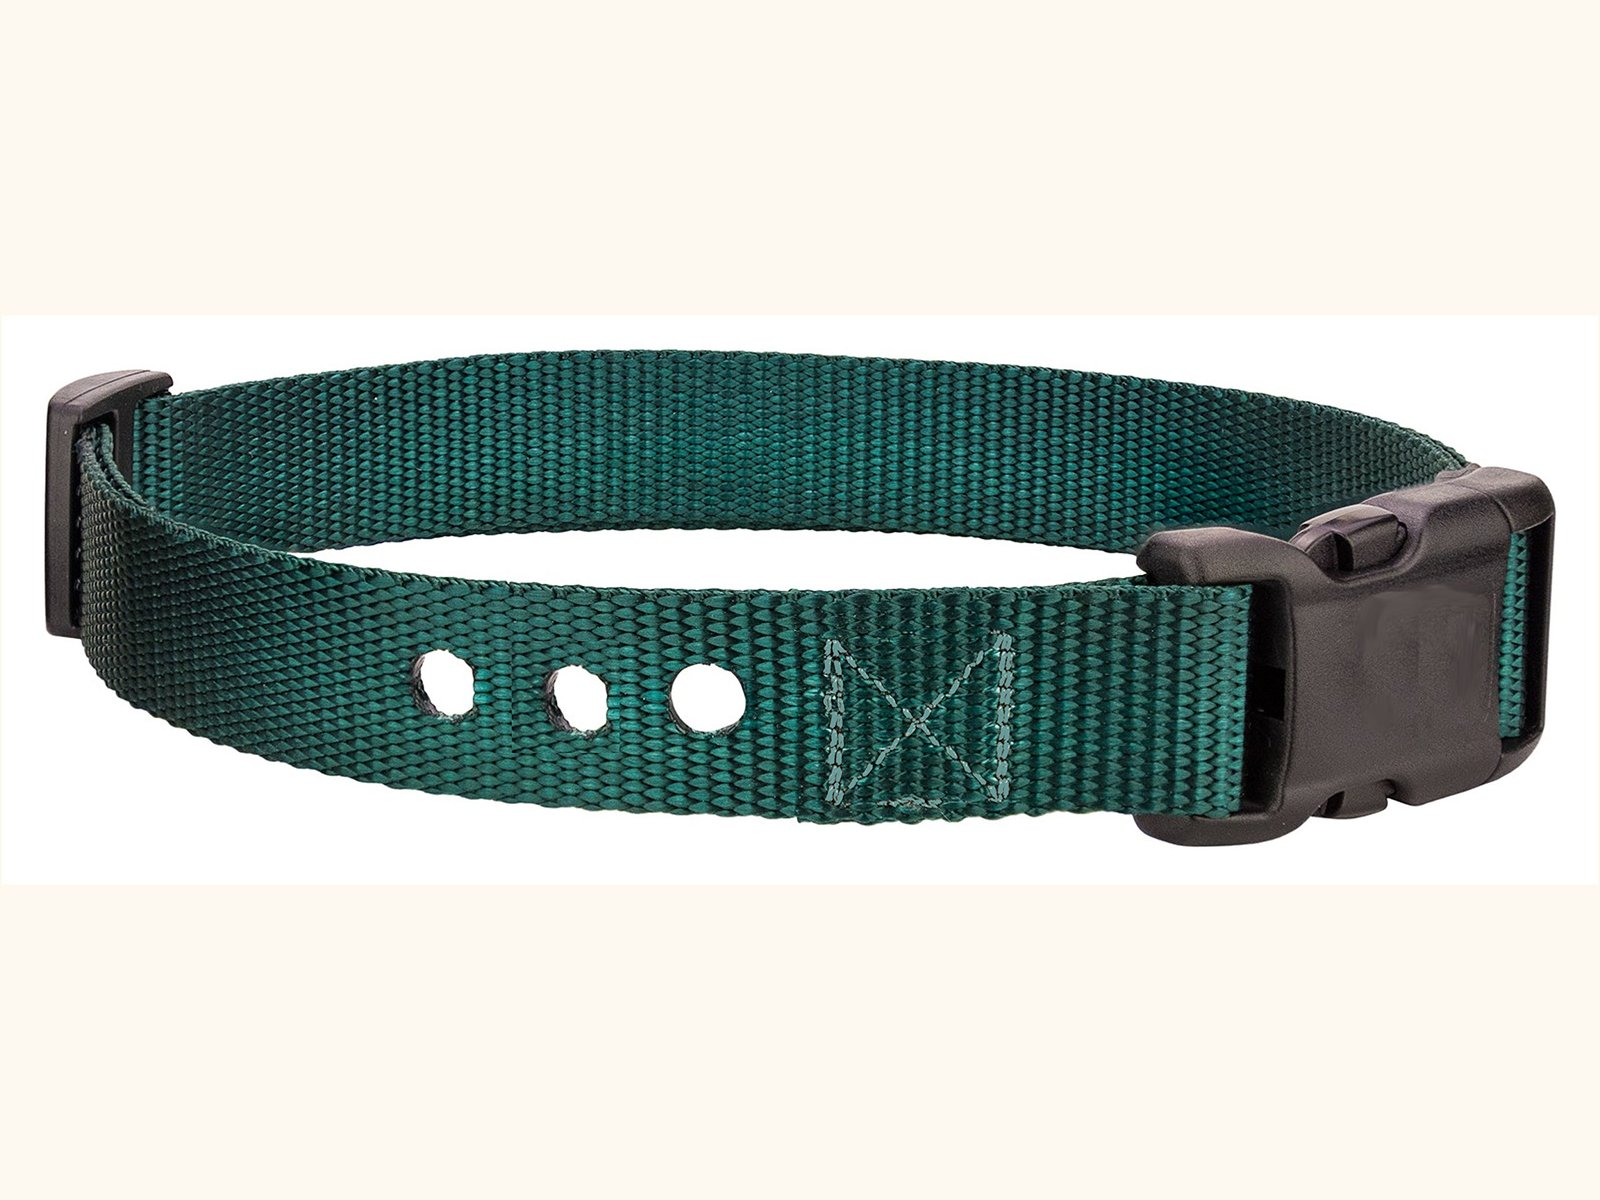 "Sparky PetCo 3/4"" Petsafe Compatible Replacement 3 Hole Dog Strap Green"